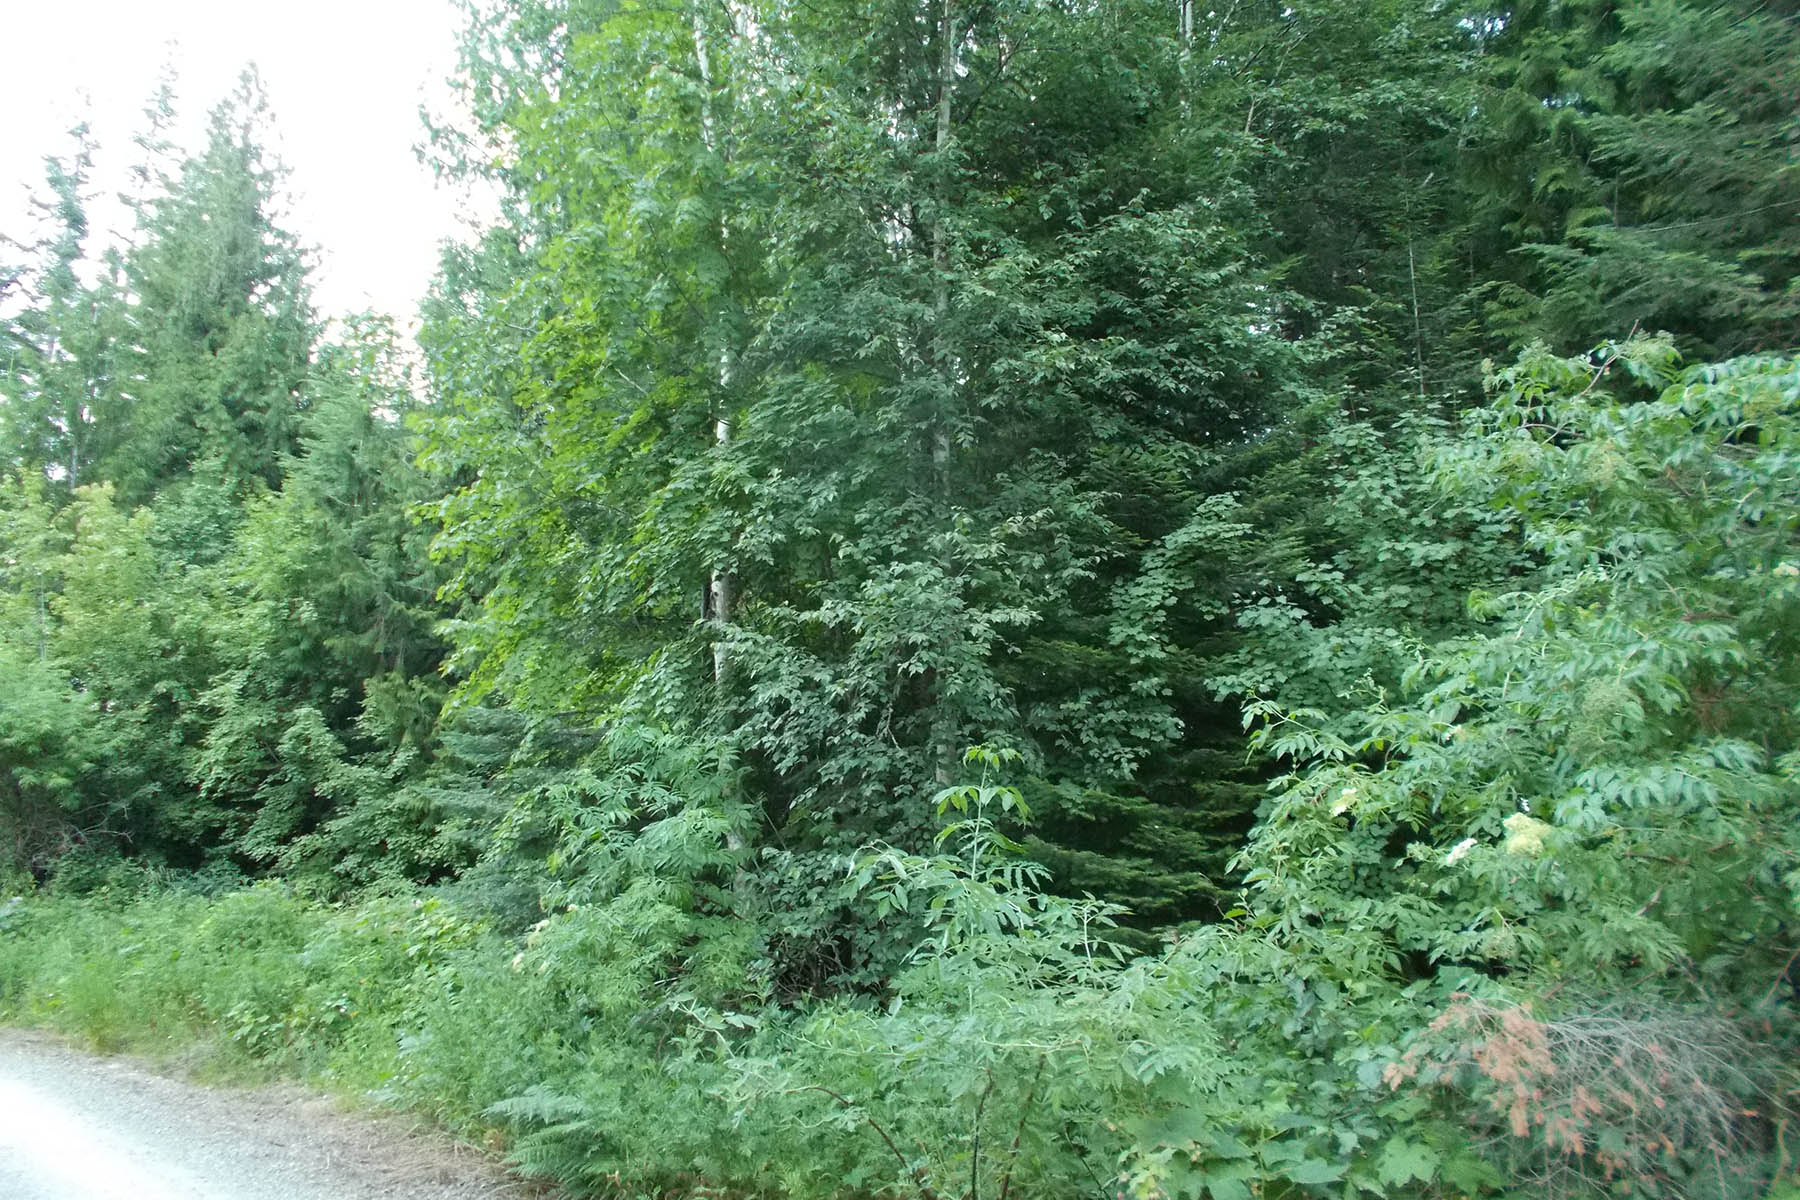 Land for Sale at Forested property just north of Sandpoint Lot 19 Scotts Lane Sandpoint, Idaho, 83864 United States